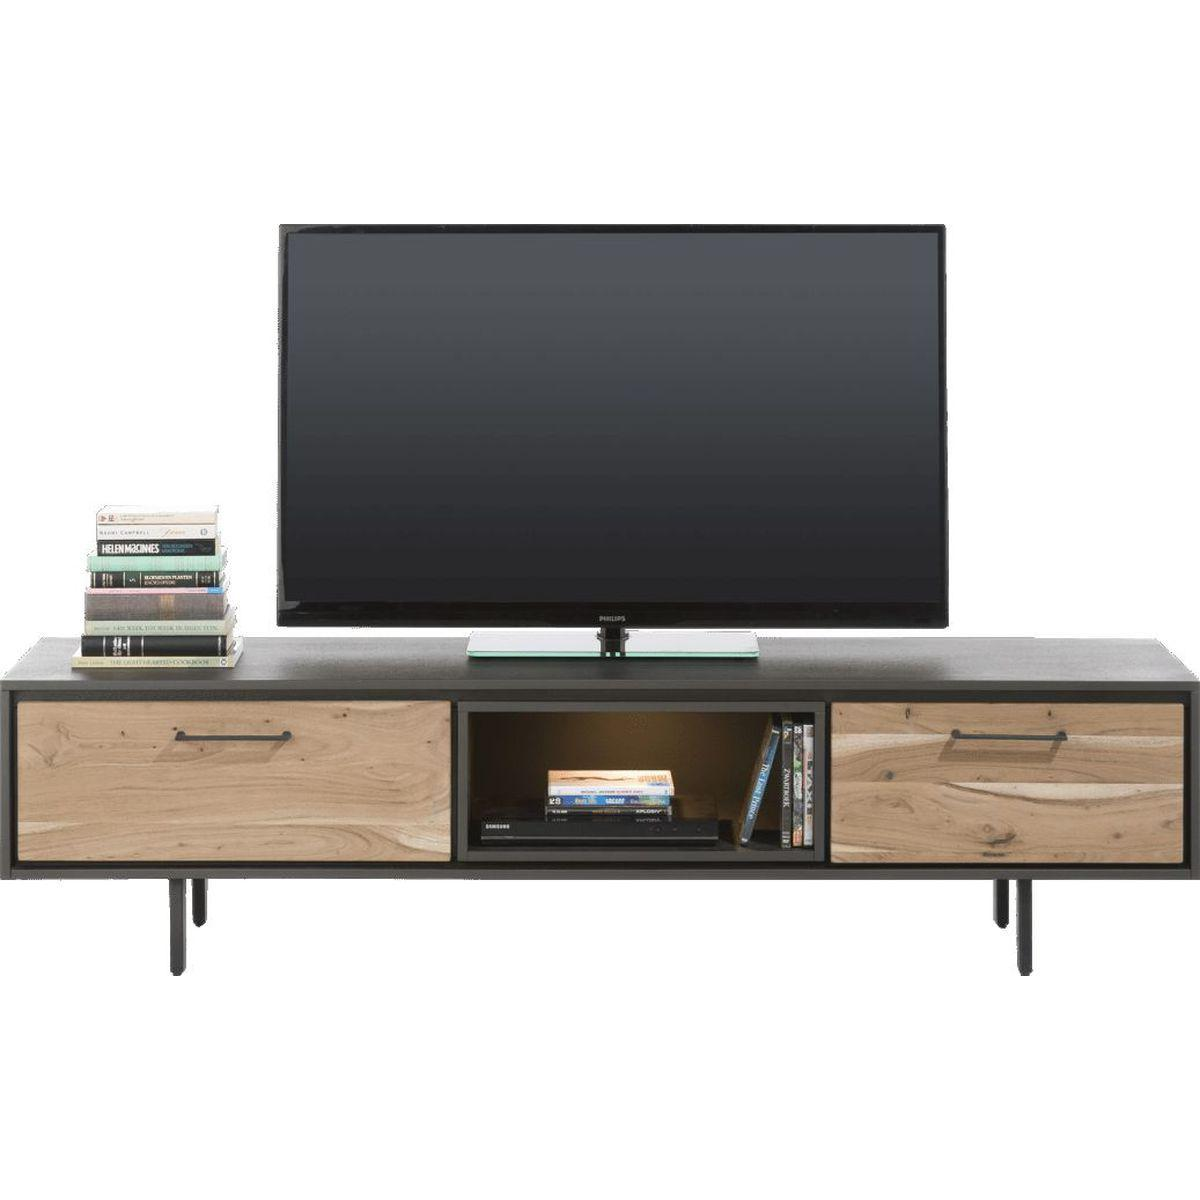 Meuble TV CENON Xooon 180cm LED